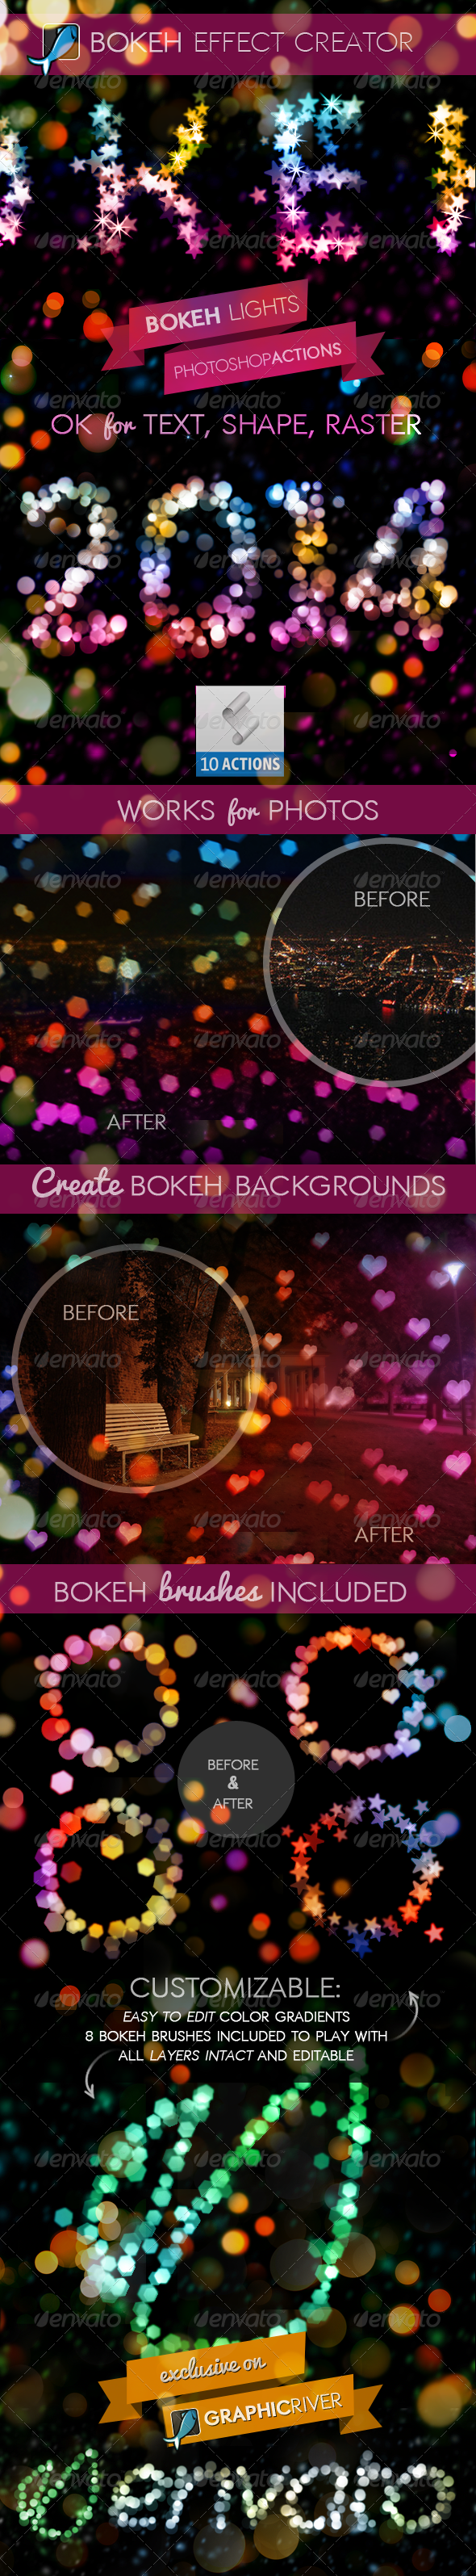 Bokeh Light Creator Photoshop Actions - Utilities Actions